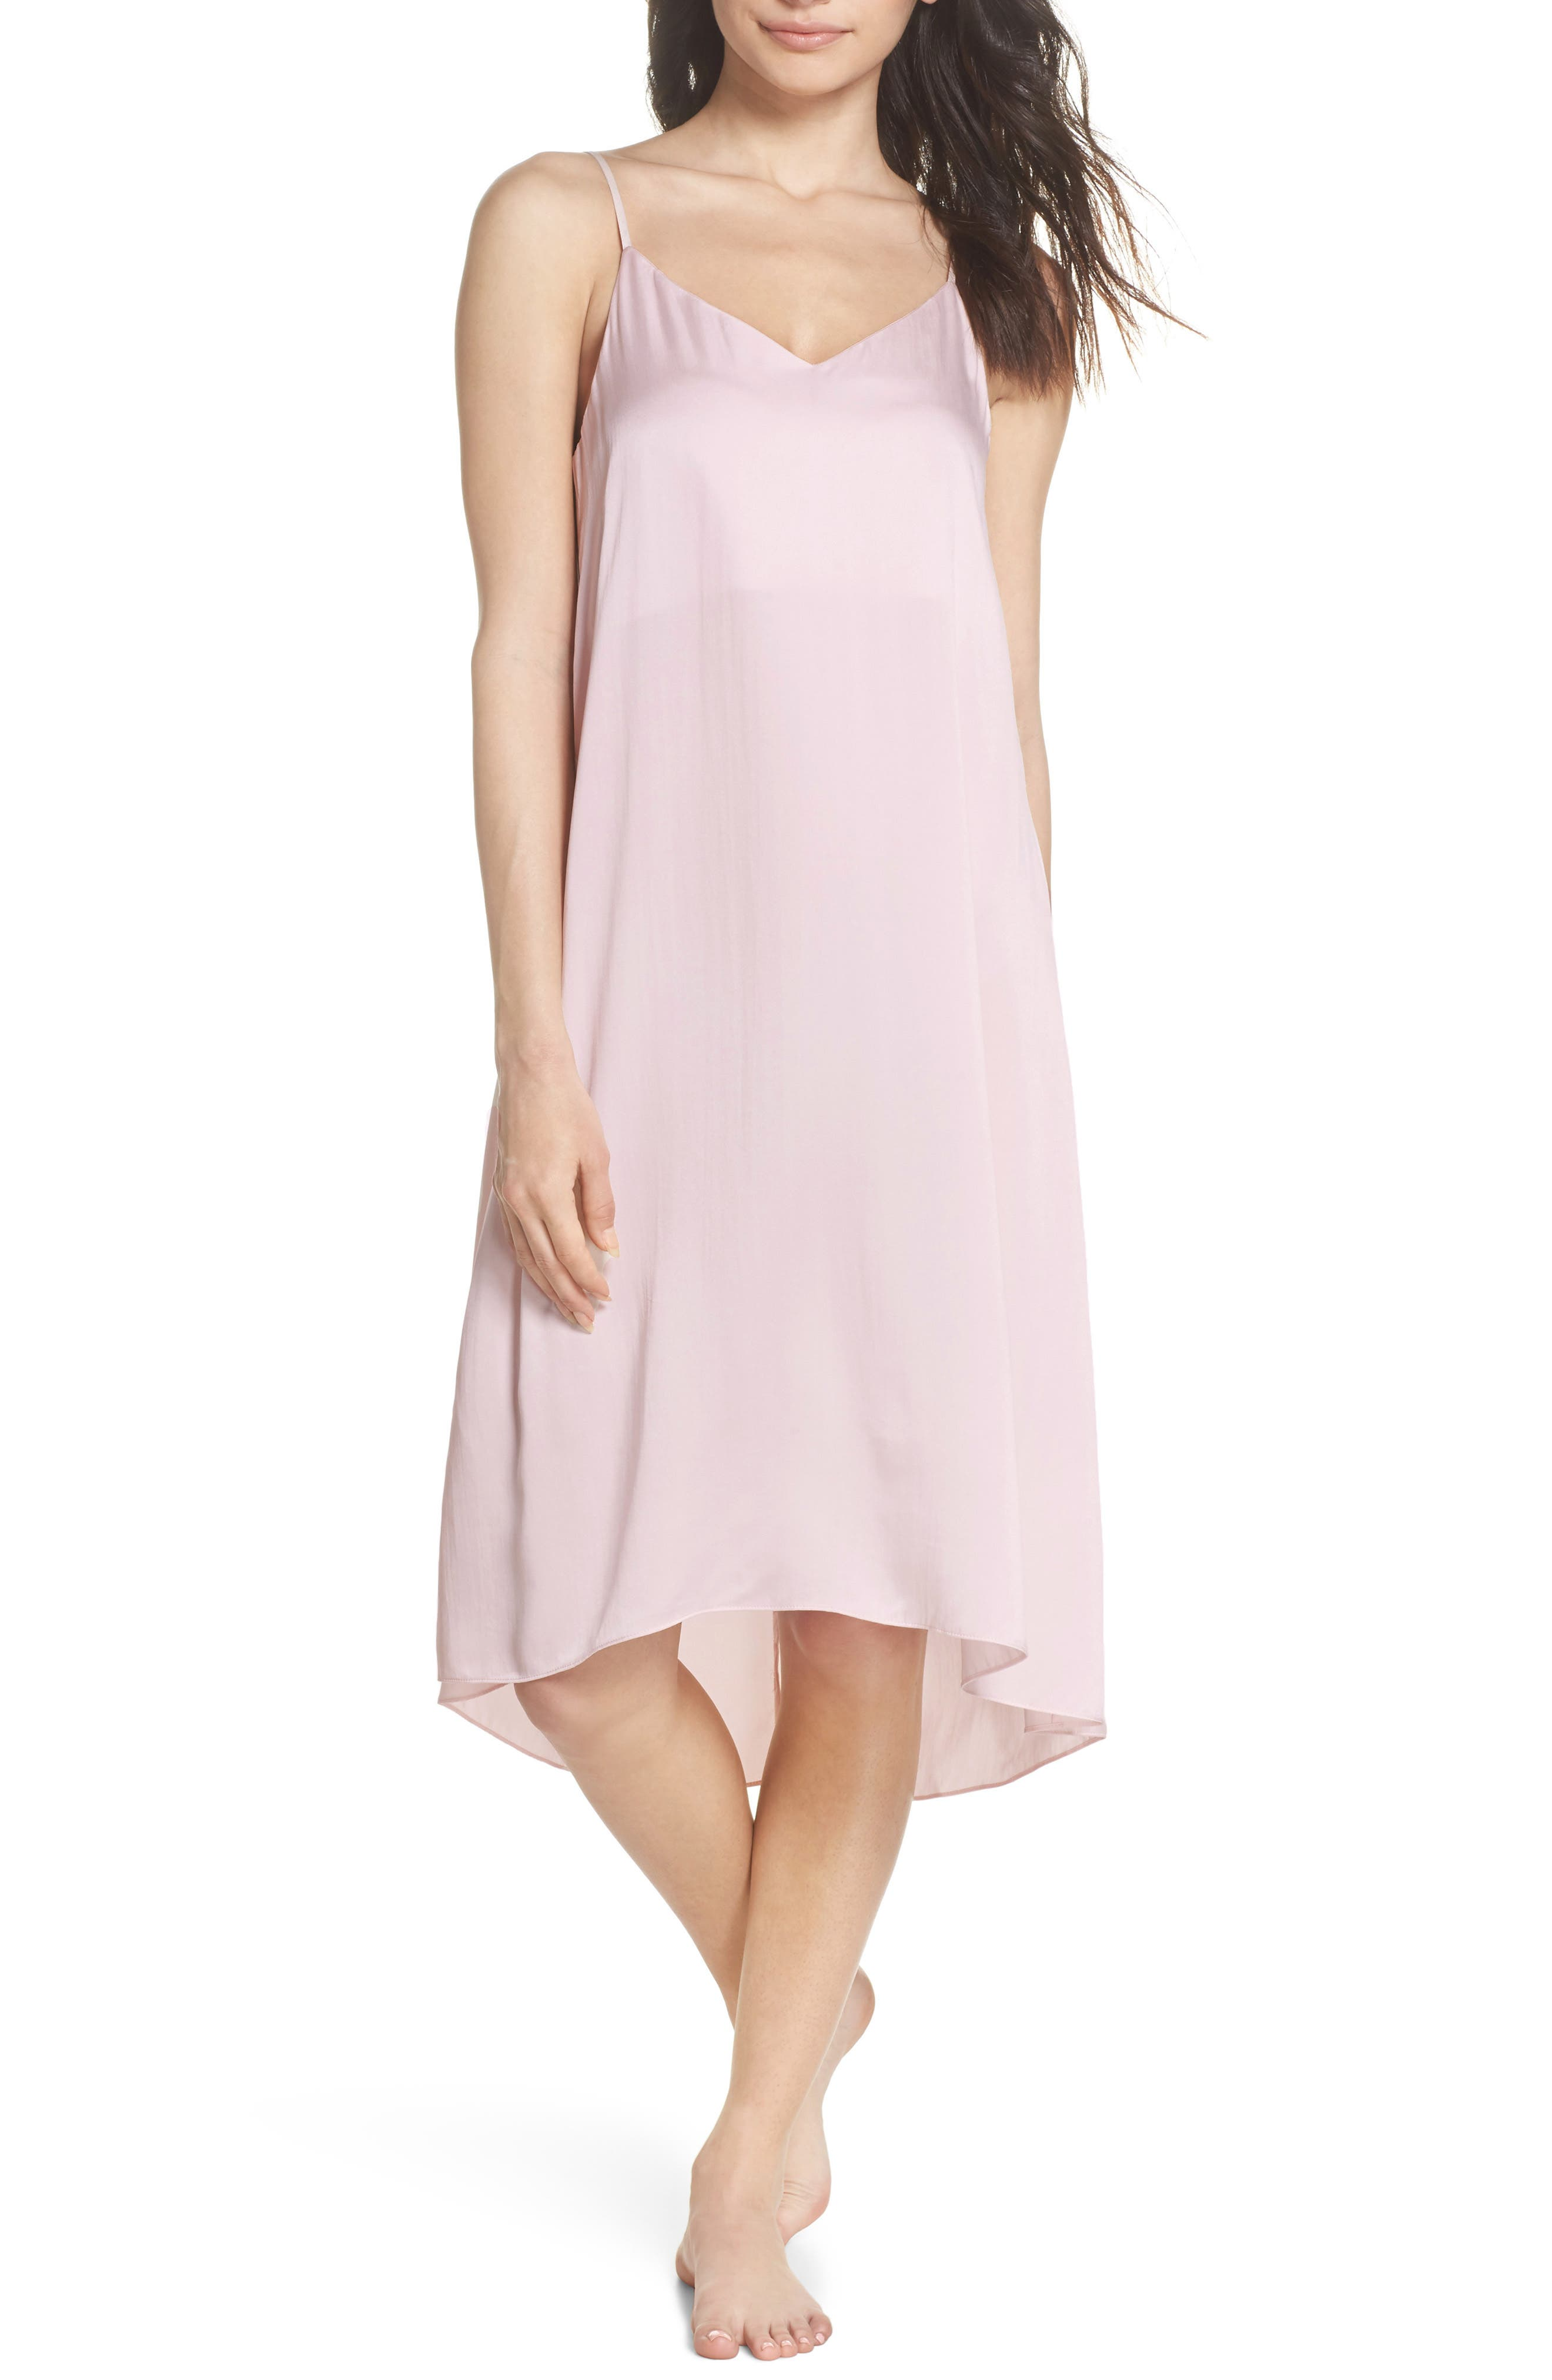 Silk Nightgown,                             Main thumbnail 1, color,                             ICE PINK